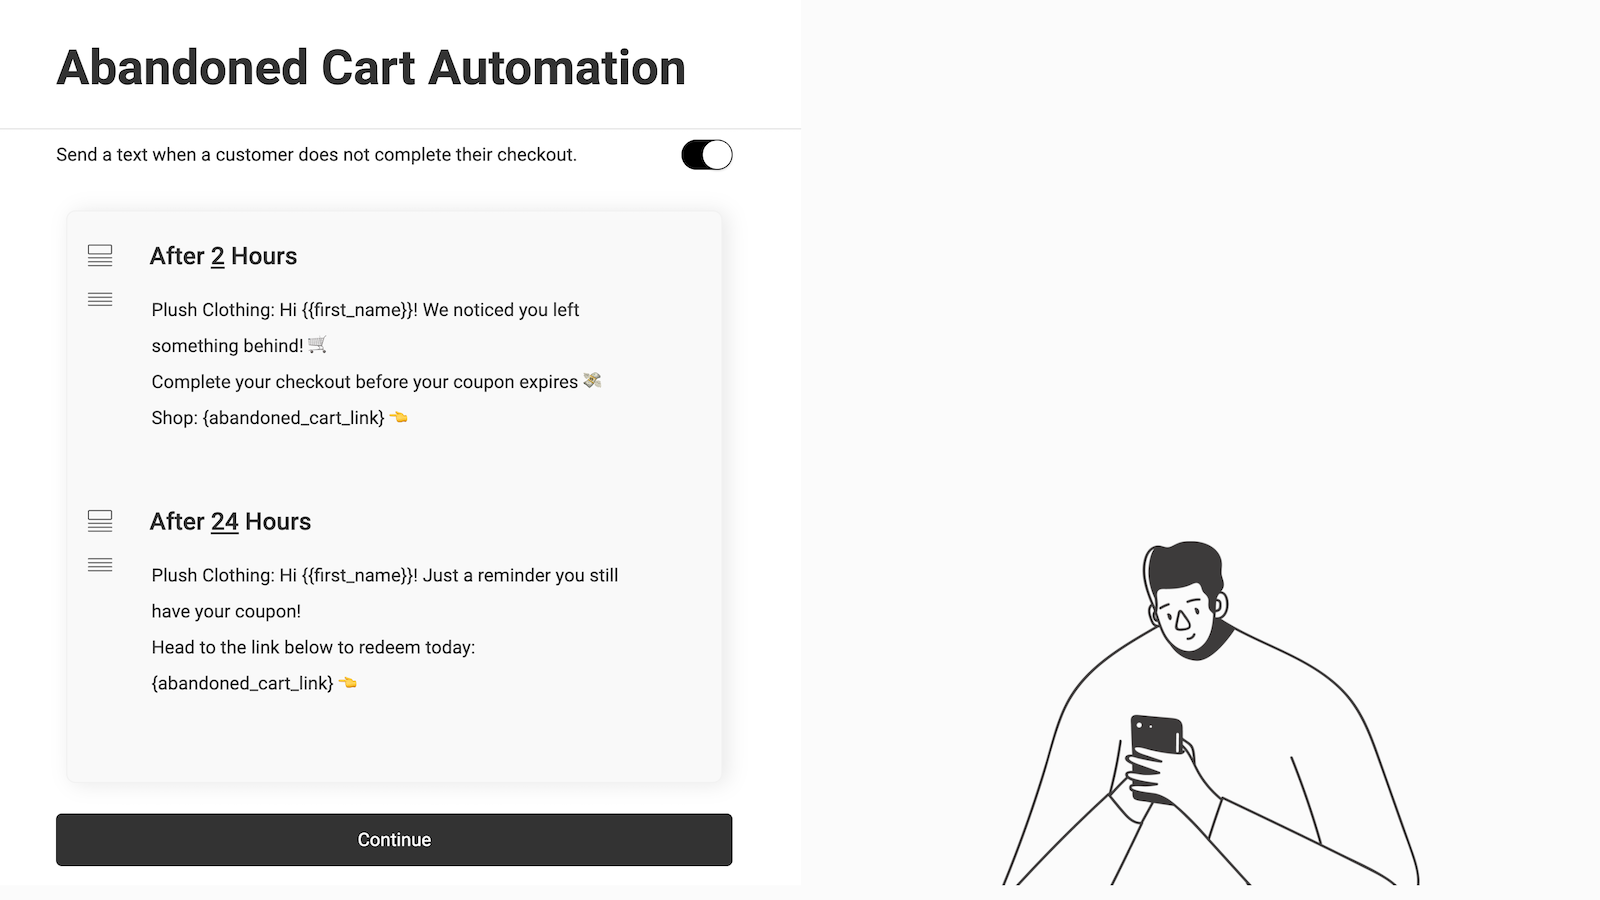 Abandoned cart automation screen